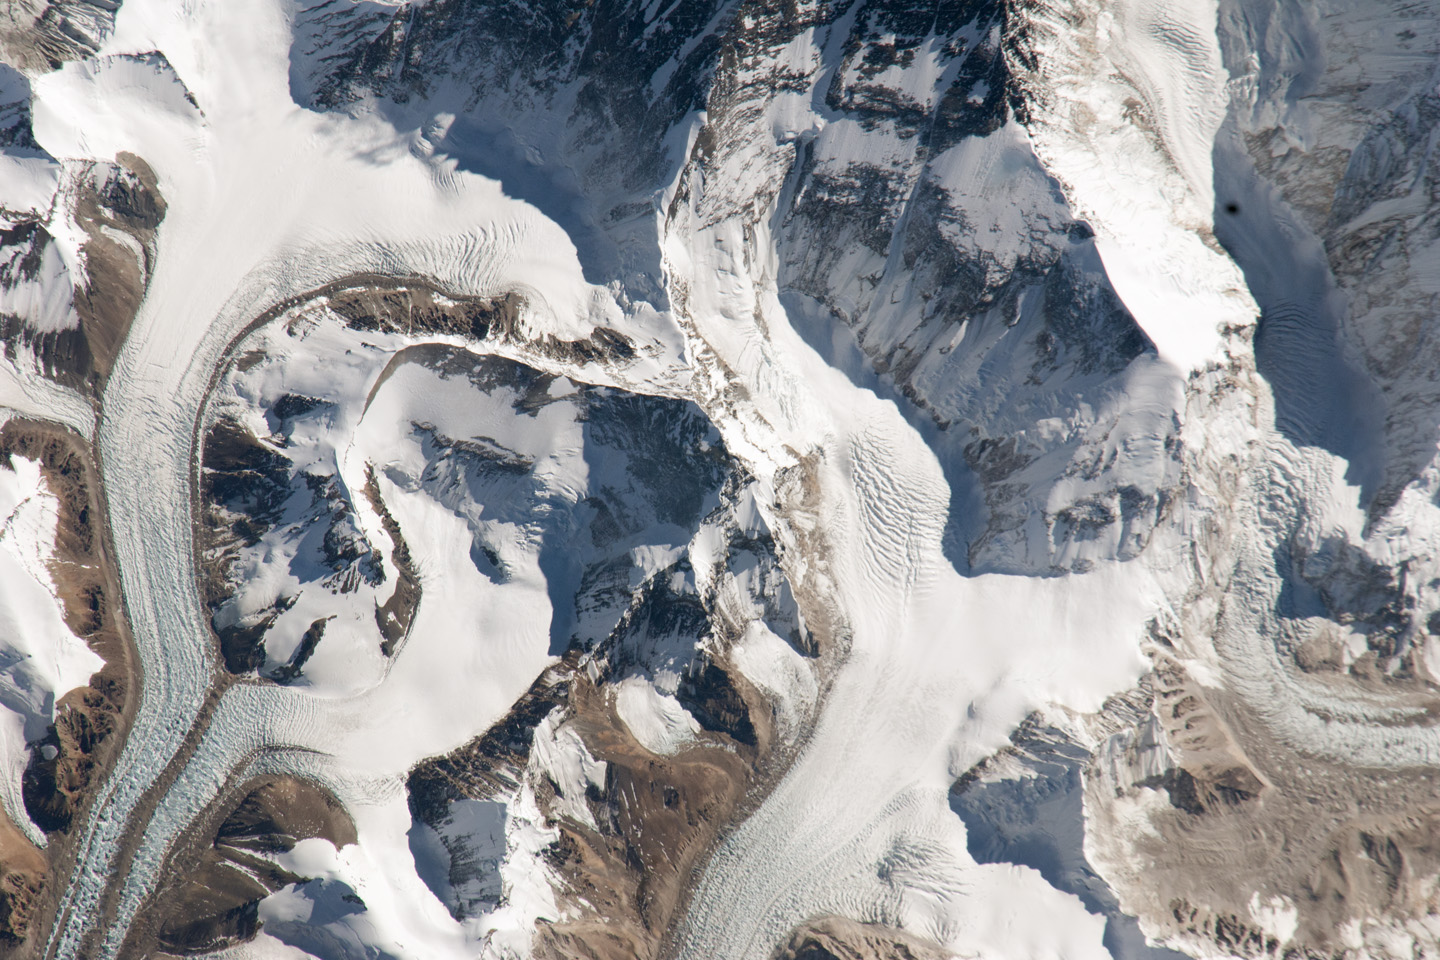 An astronaut's photo of Mount Everest